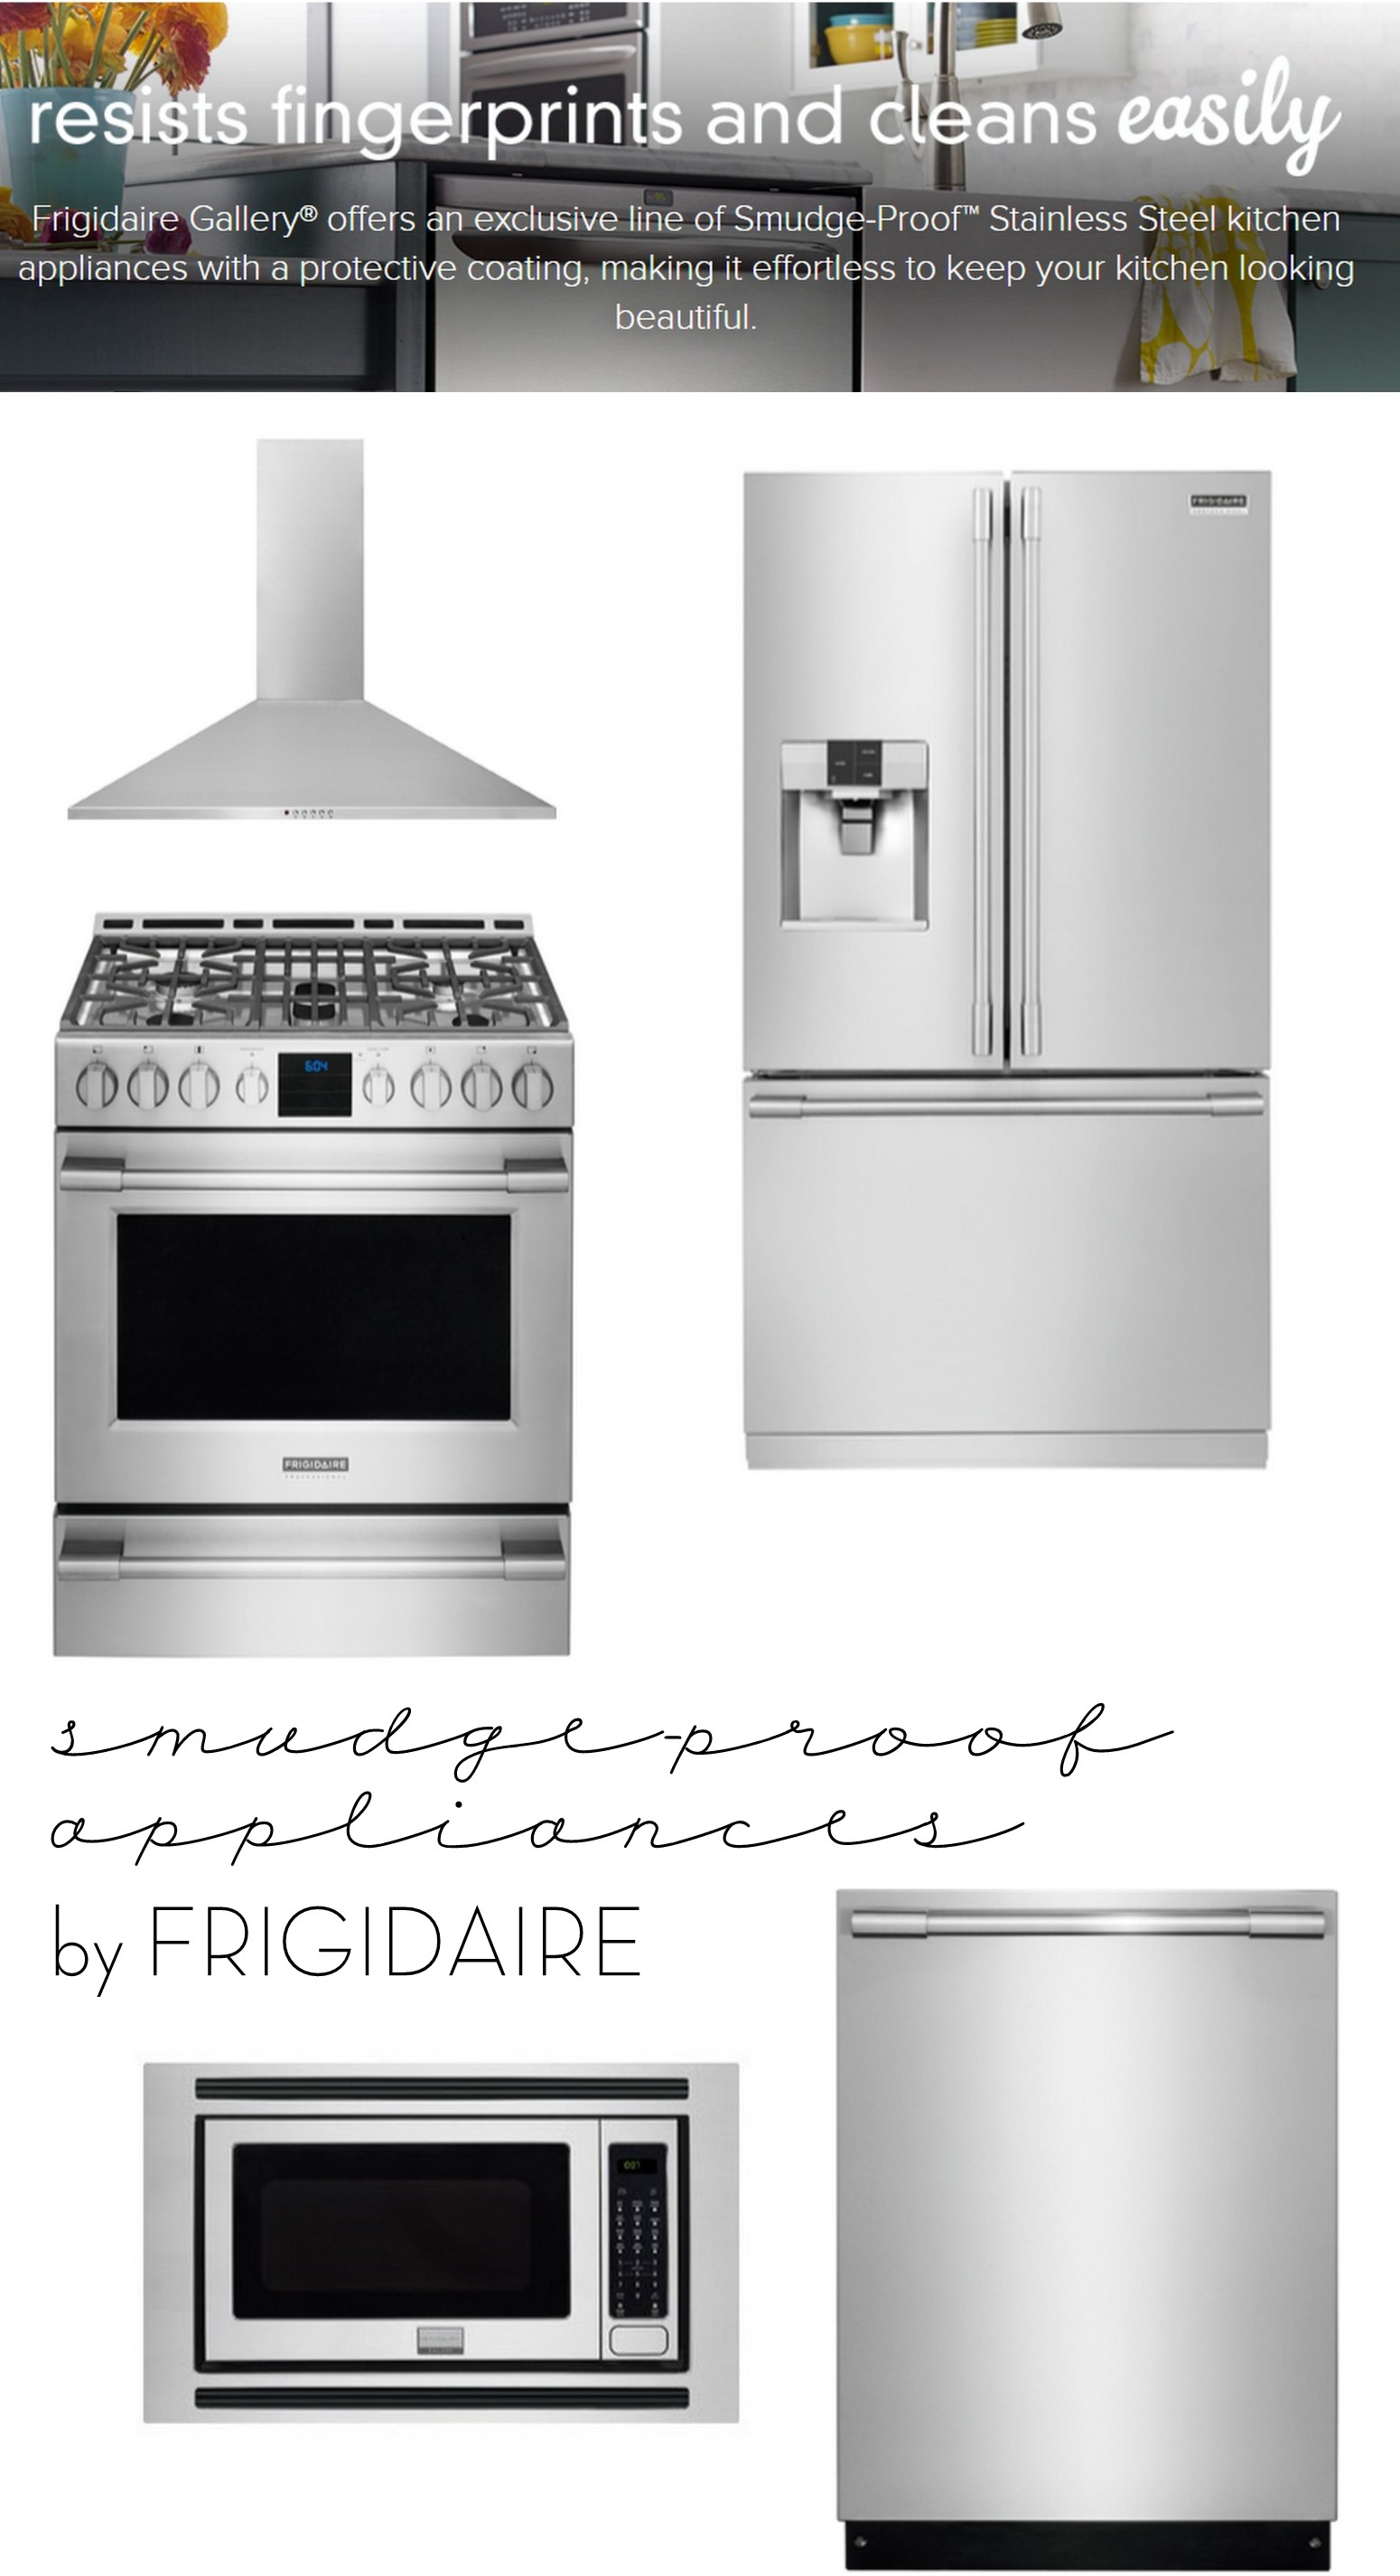 amazing Smudge Proof Stainless Steel Kitchen Appliances #1: Resist Fingerprints on your appliances with SMUDGE-PROOF stainless steel by  Frigidaire